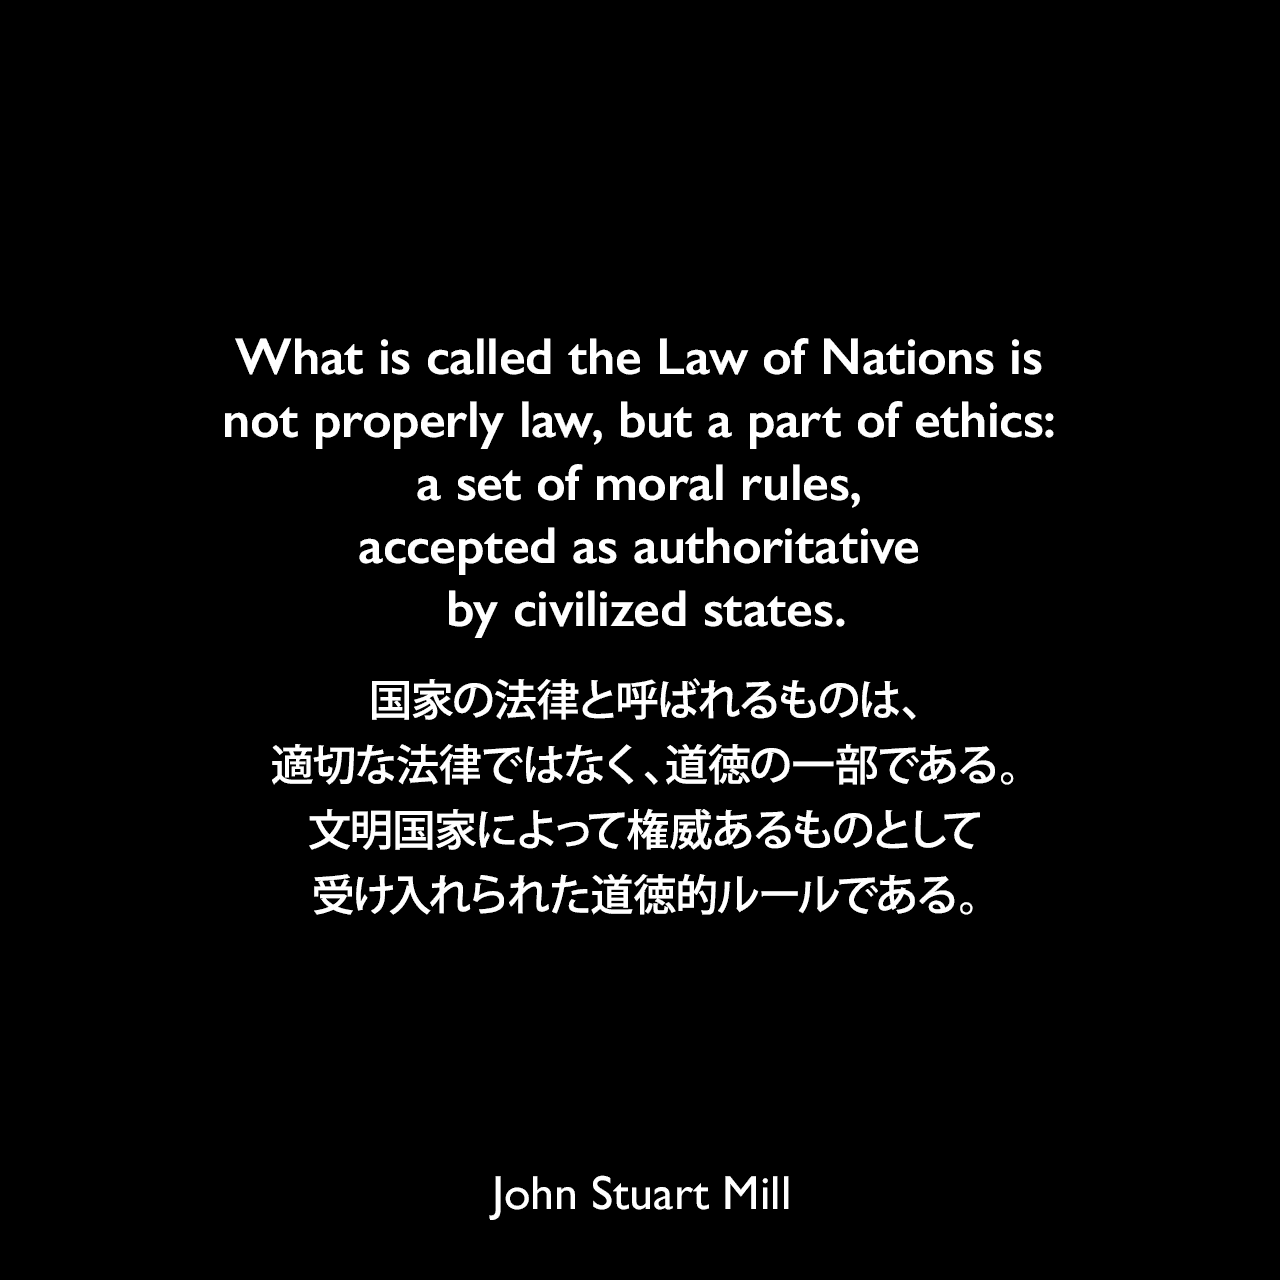 What is called the Law of Nations is not properly law, but a part of ethics: a set of moral rules, accepted as authoritative by civilized states.国家の法律と呼ばれるものは、適切な法律ではなく、道徳の一部である。文明国家によって権威あるものとして受け入れられた道徳的ルールである。- 1867年2月、セント・アンドリュース大学の学長就任演説よりJohn Stuart Mill